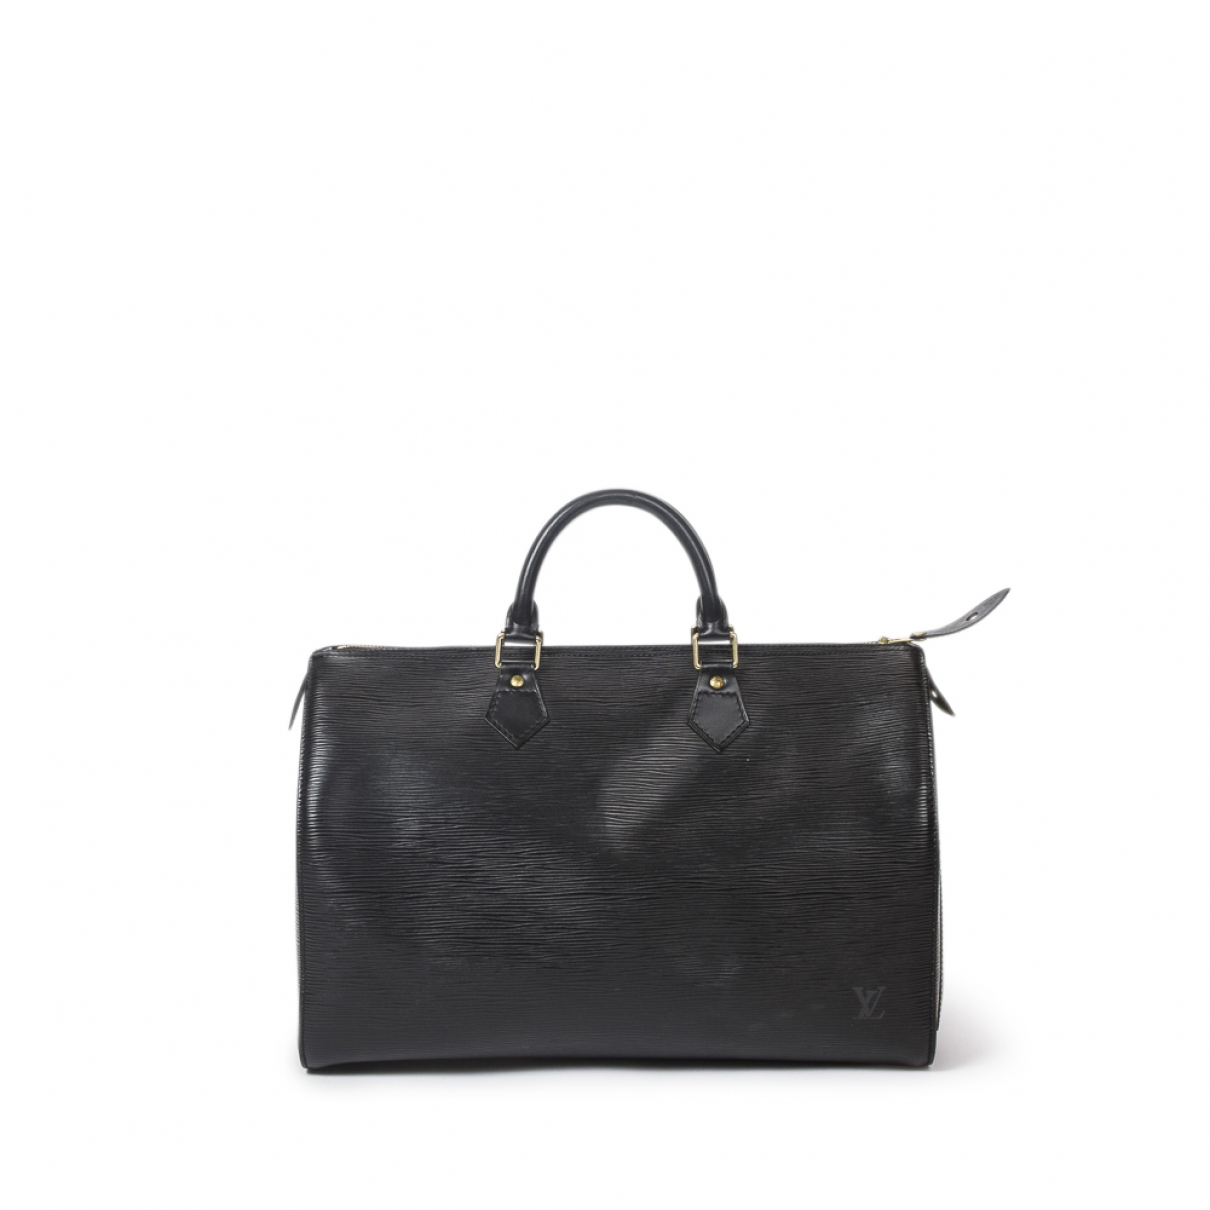 Louis Vuitton Speedy Black Leather handbag for Women \N